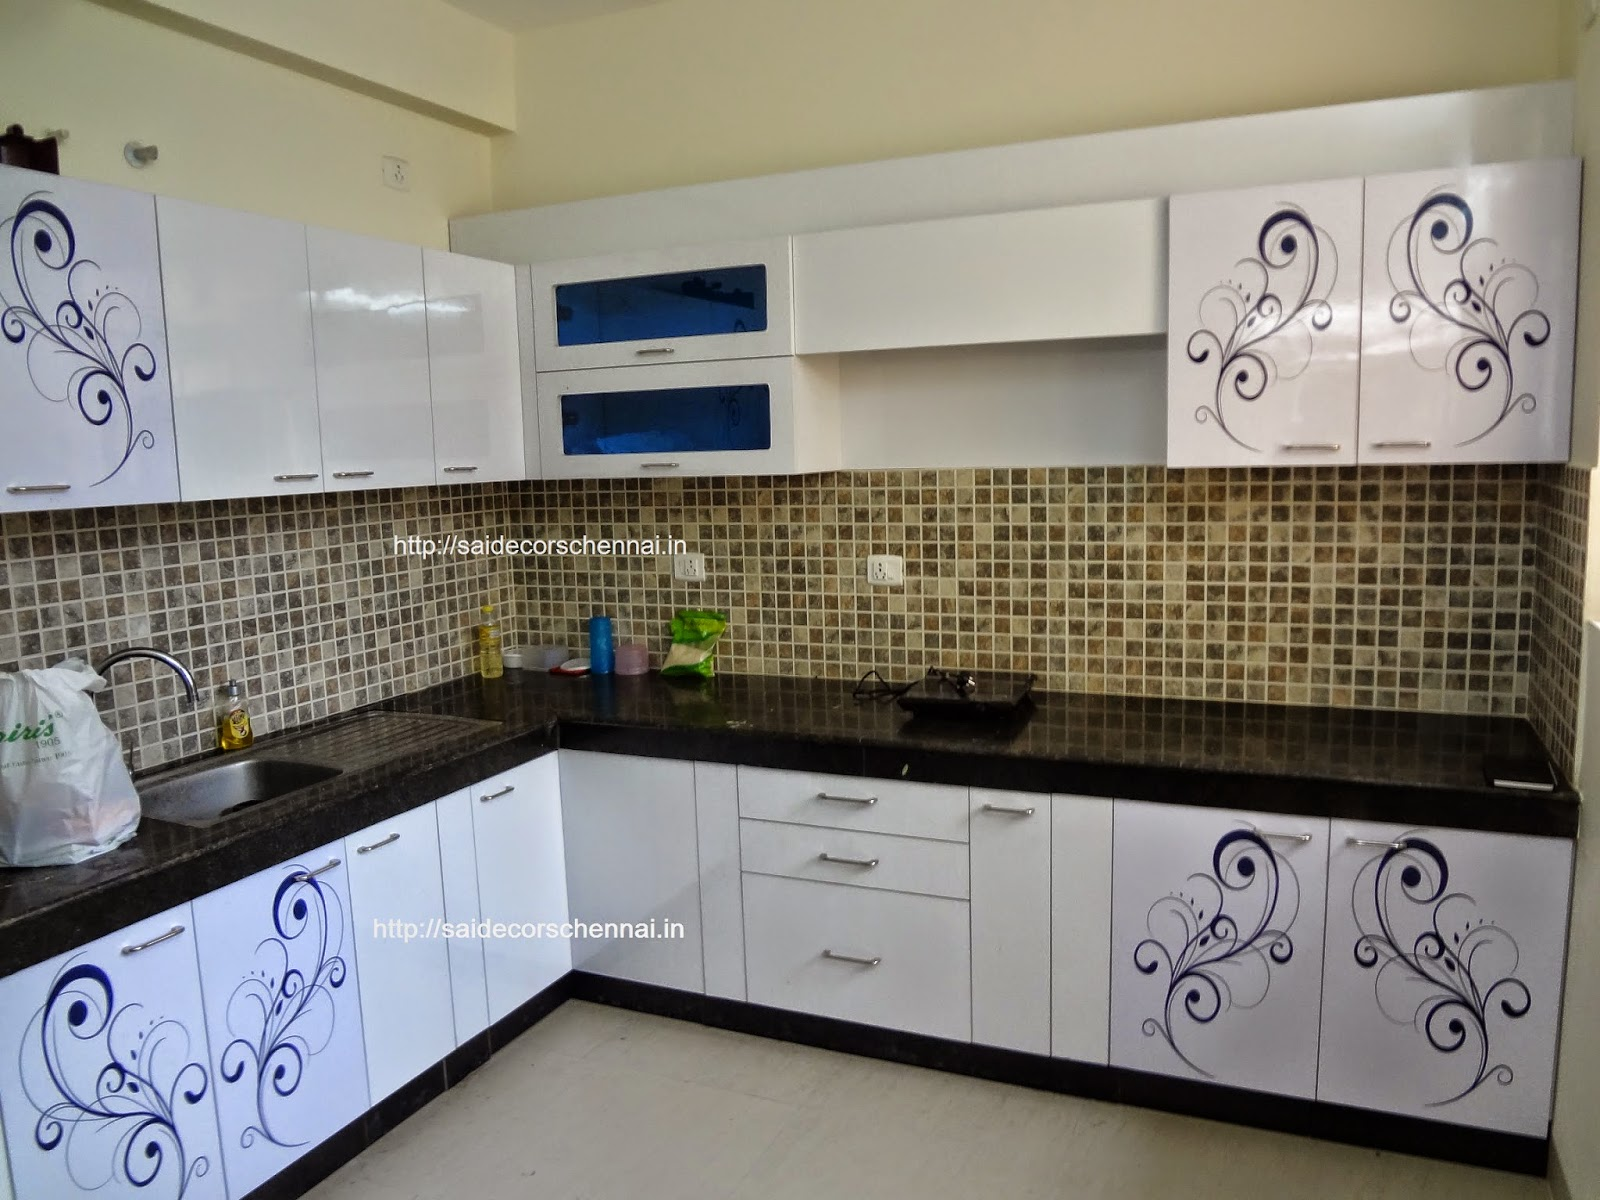 Flower  Floral Design Modular Kitchen With Customized Creeper Design Glossy  Or Matt Finish With Soft Close Hinges.